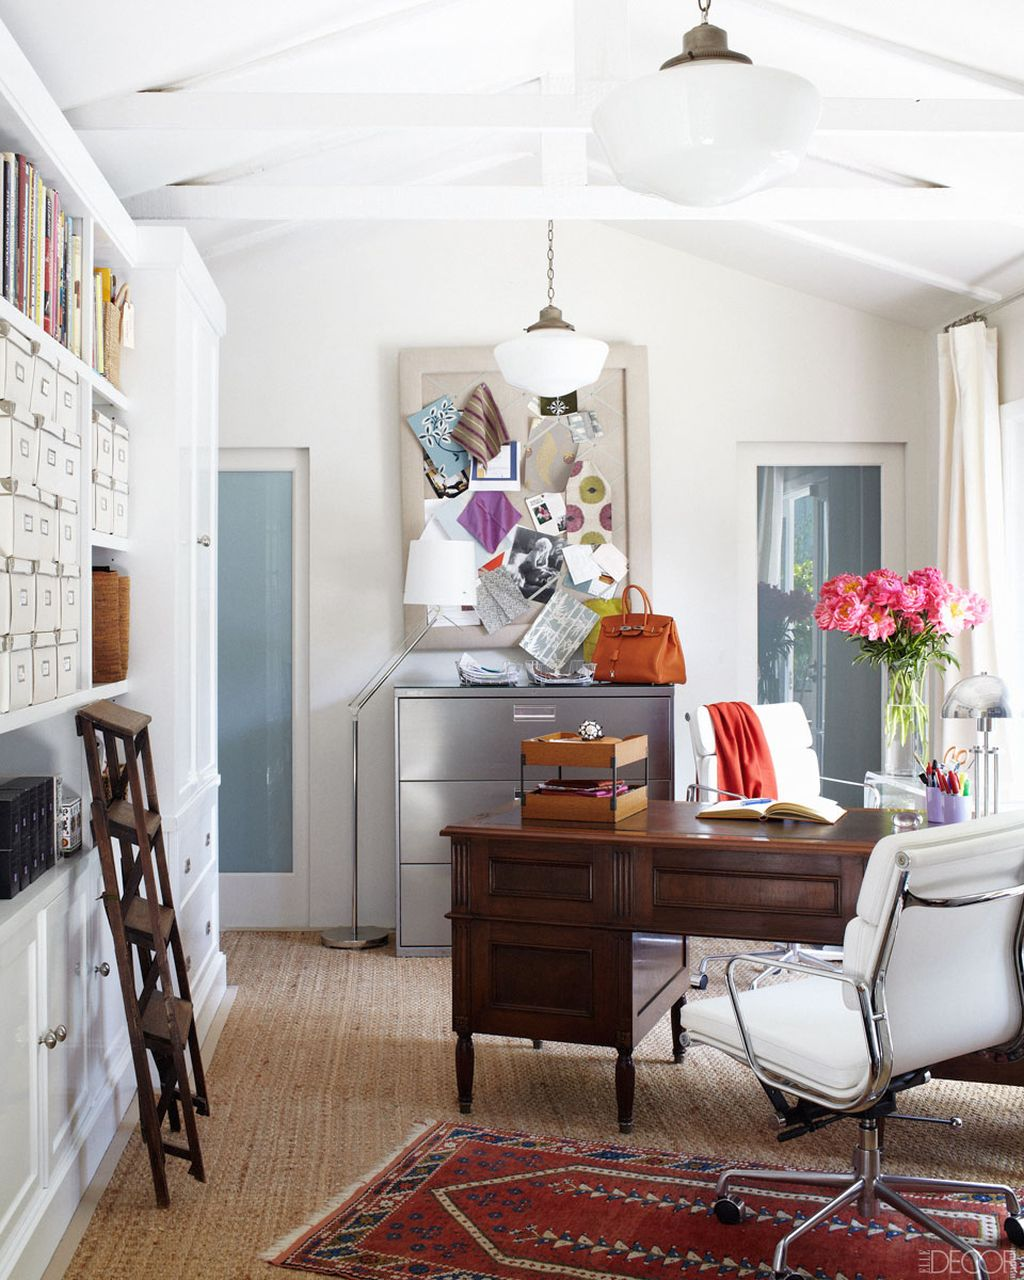 20 inspiring home office design ideas for small spaces for Inspiring home office ideas